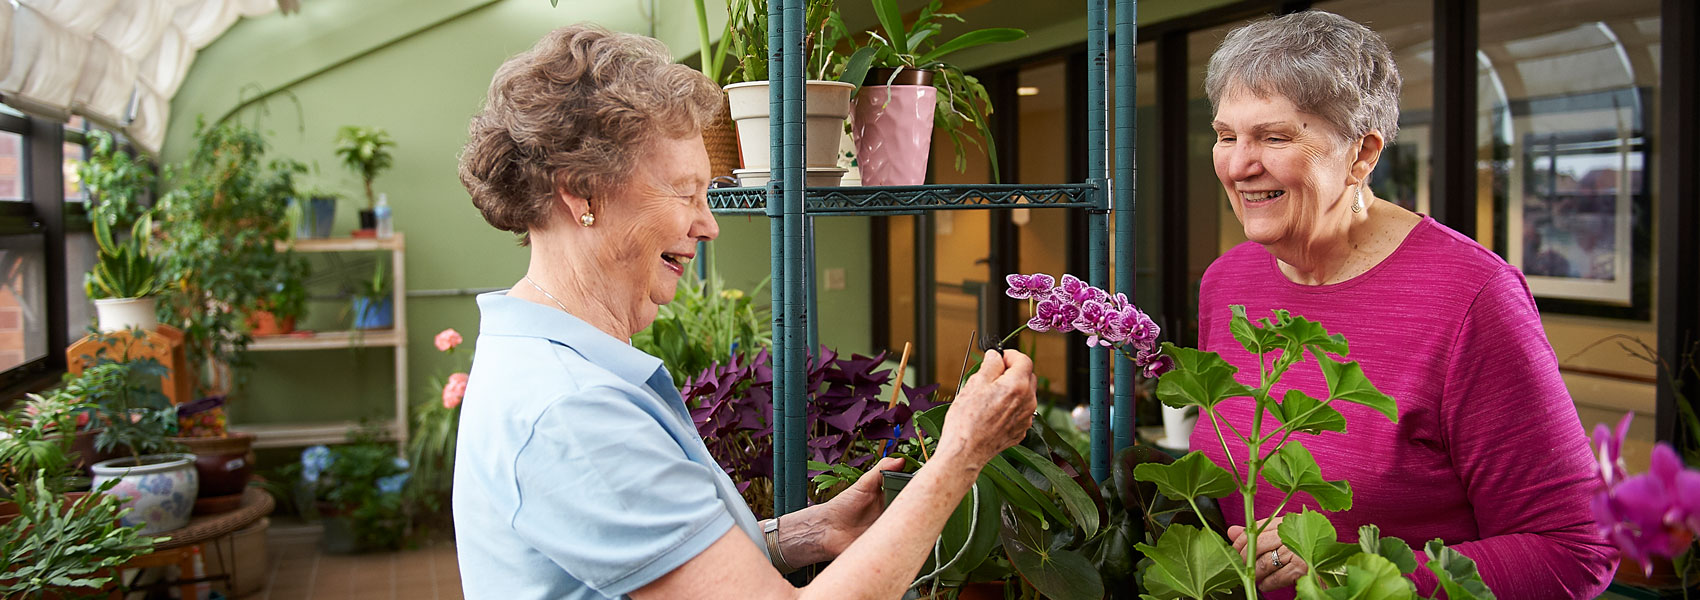 Two elderly women looking at plants in the greenhouse at Beacon Hill retirement community